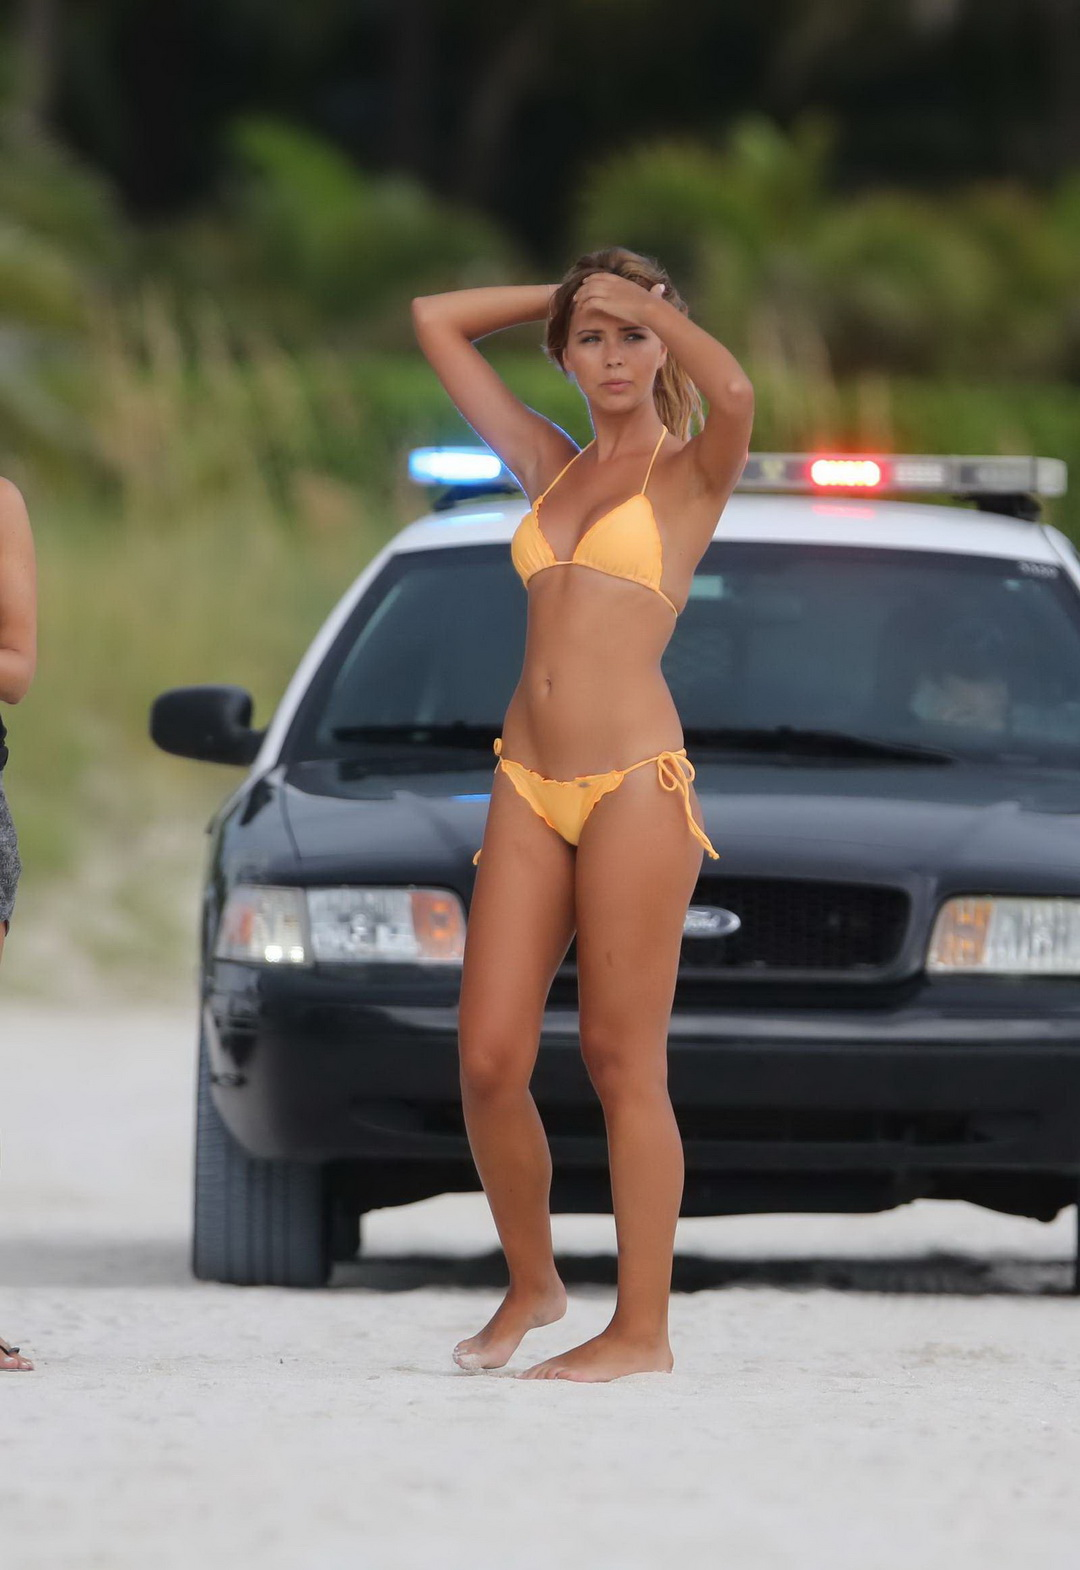 off her hot body in a tiny orange string bikini at the beach in miami